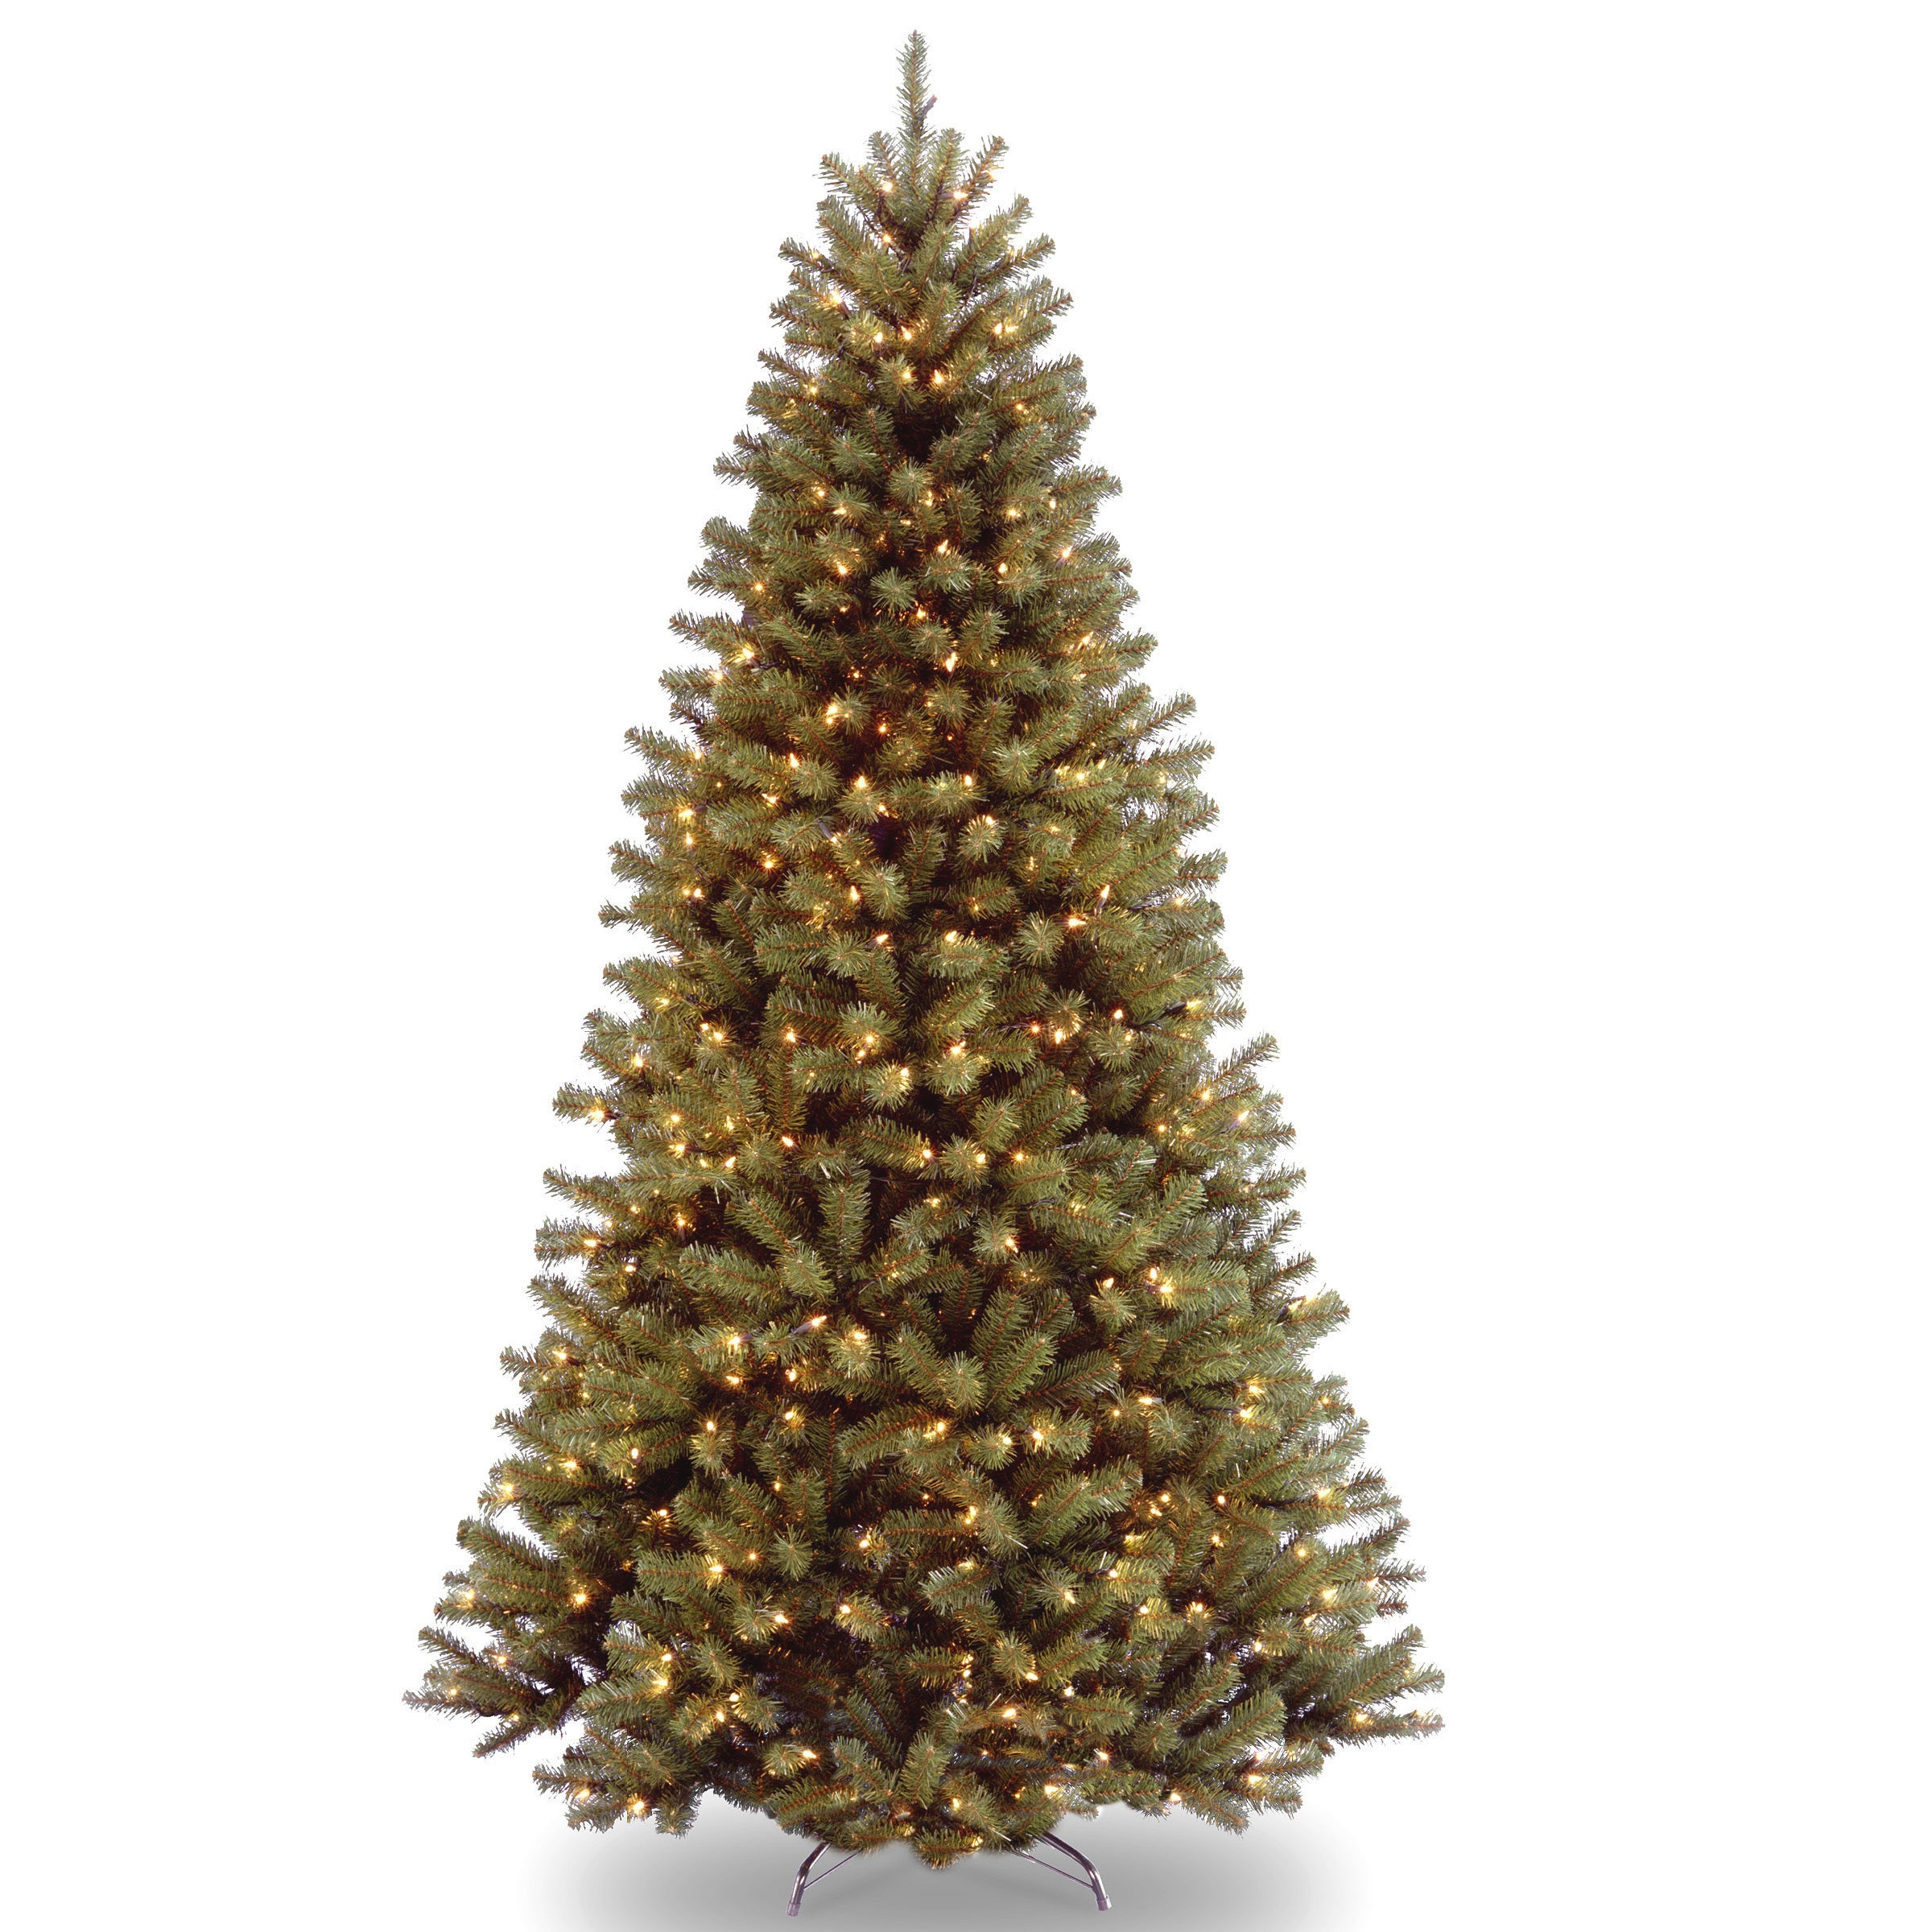 43f67d1721d Shop 7-foot Pre-lit Artificial Christmas Tree w Clear or Multicolor Bulbs -  Free Shipping Today - Overstock - 10610684